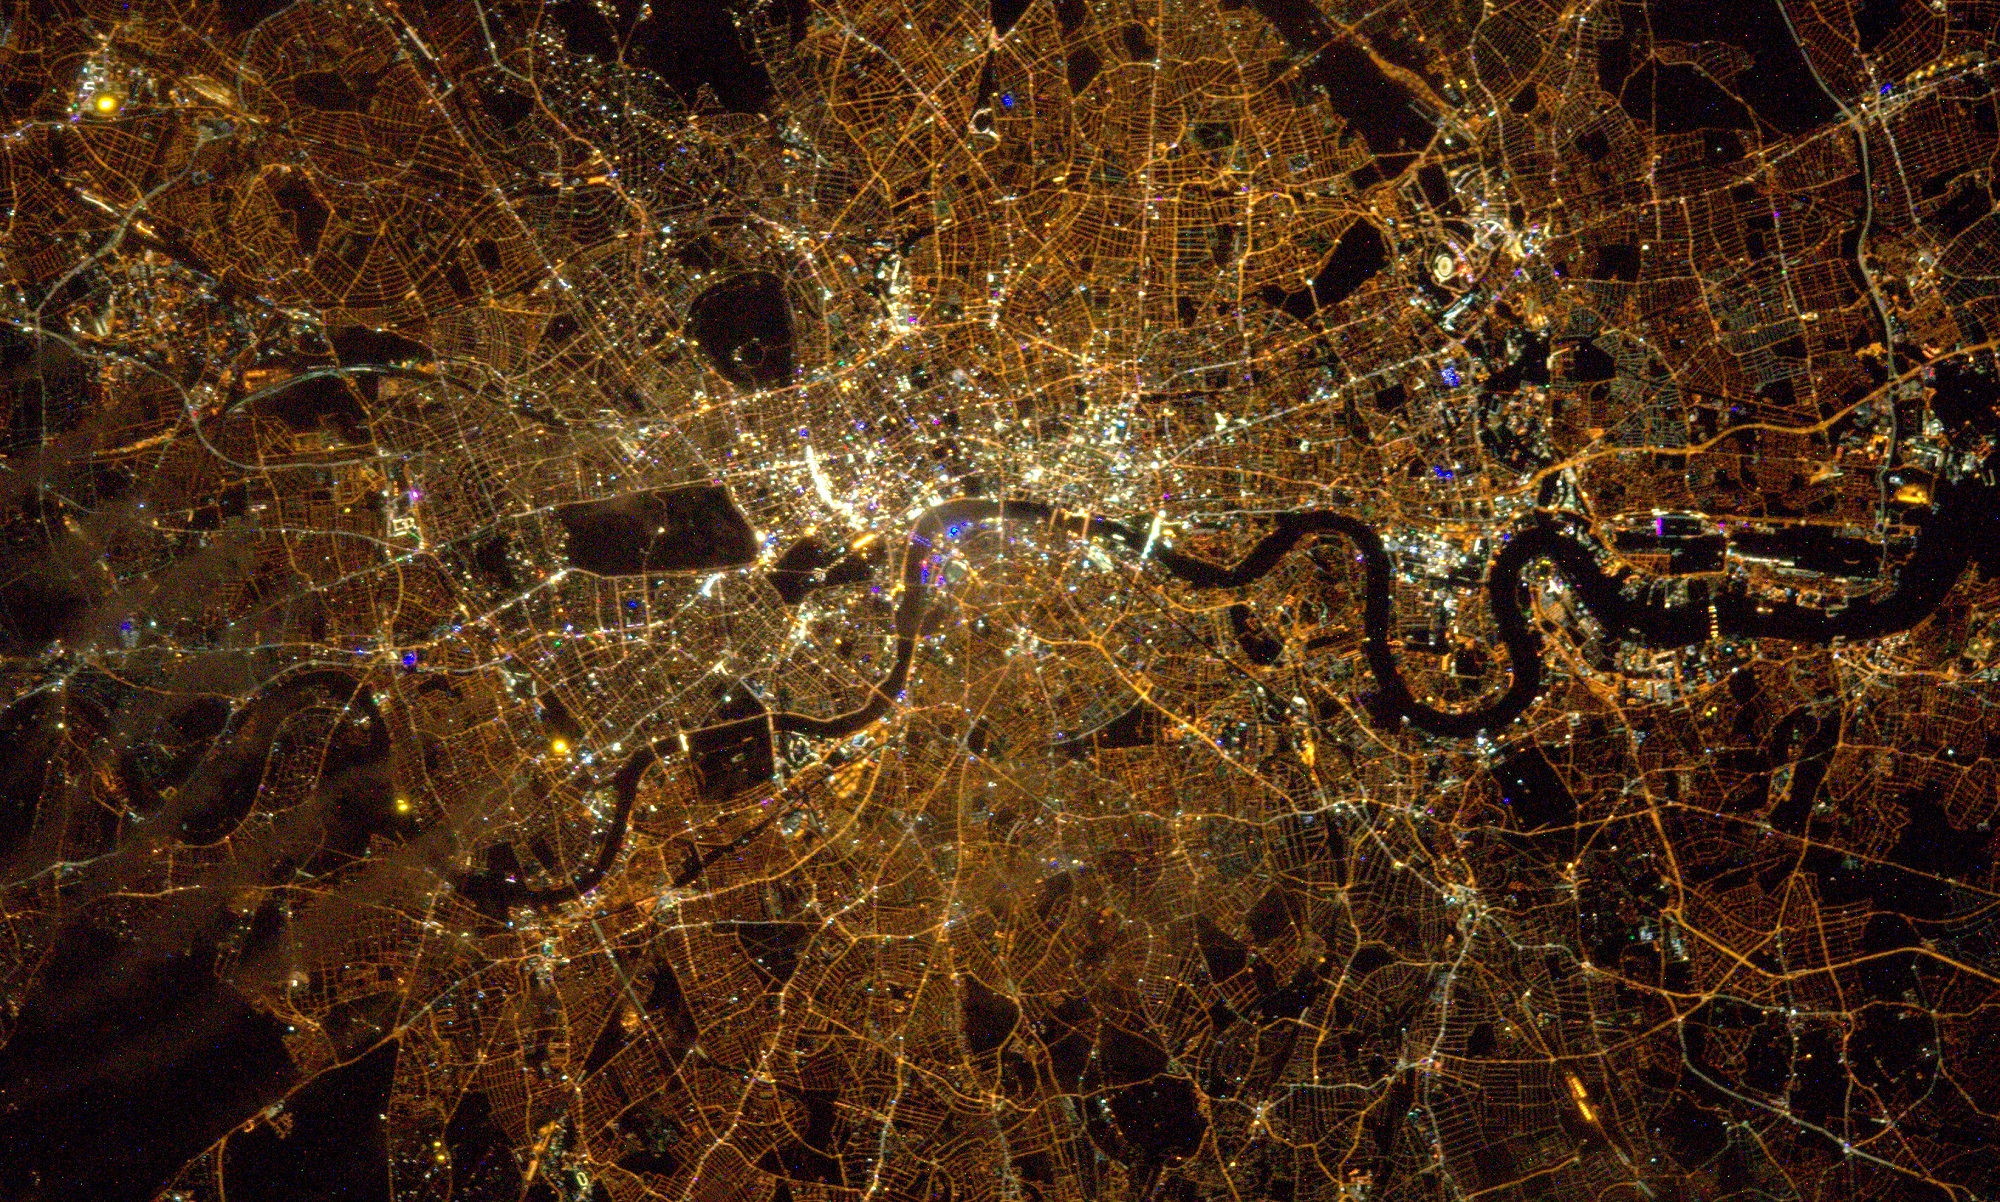 London sett av satellitt om natten. Foto: ESA